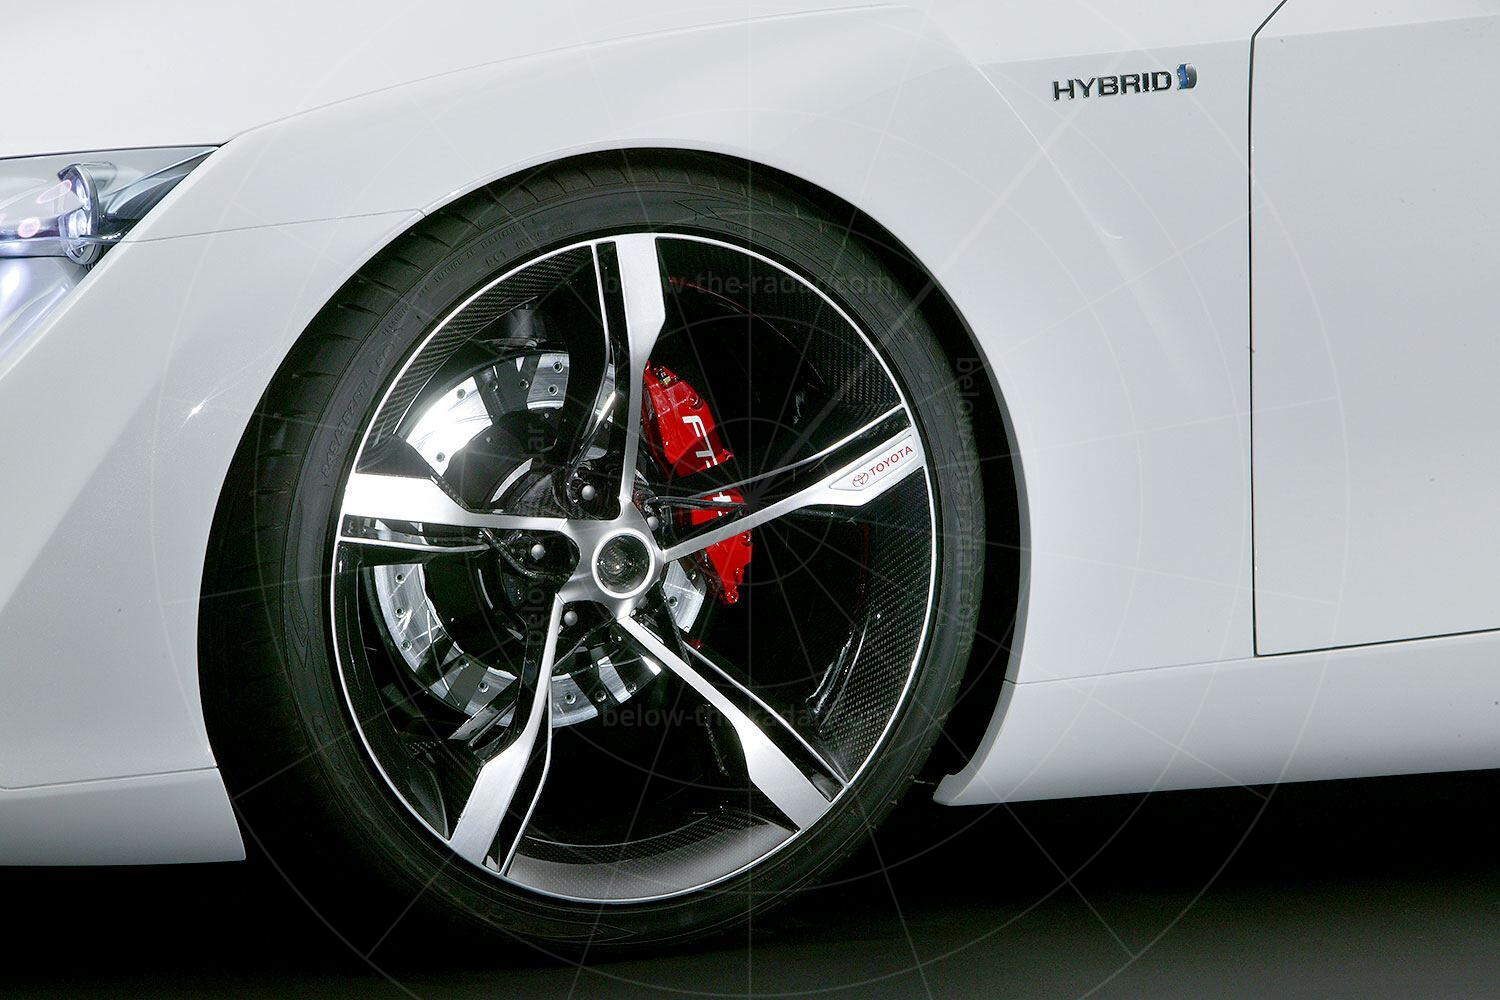 Toyota FT-HS concept front wheel Pic: Toyota | Toyota FT-HS concept front wheel